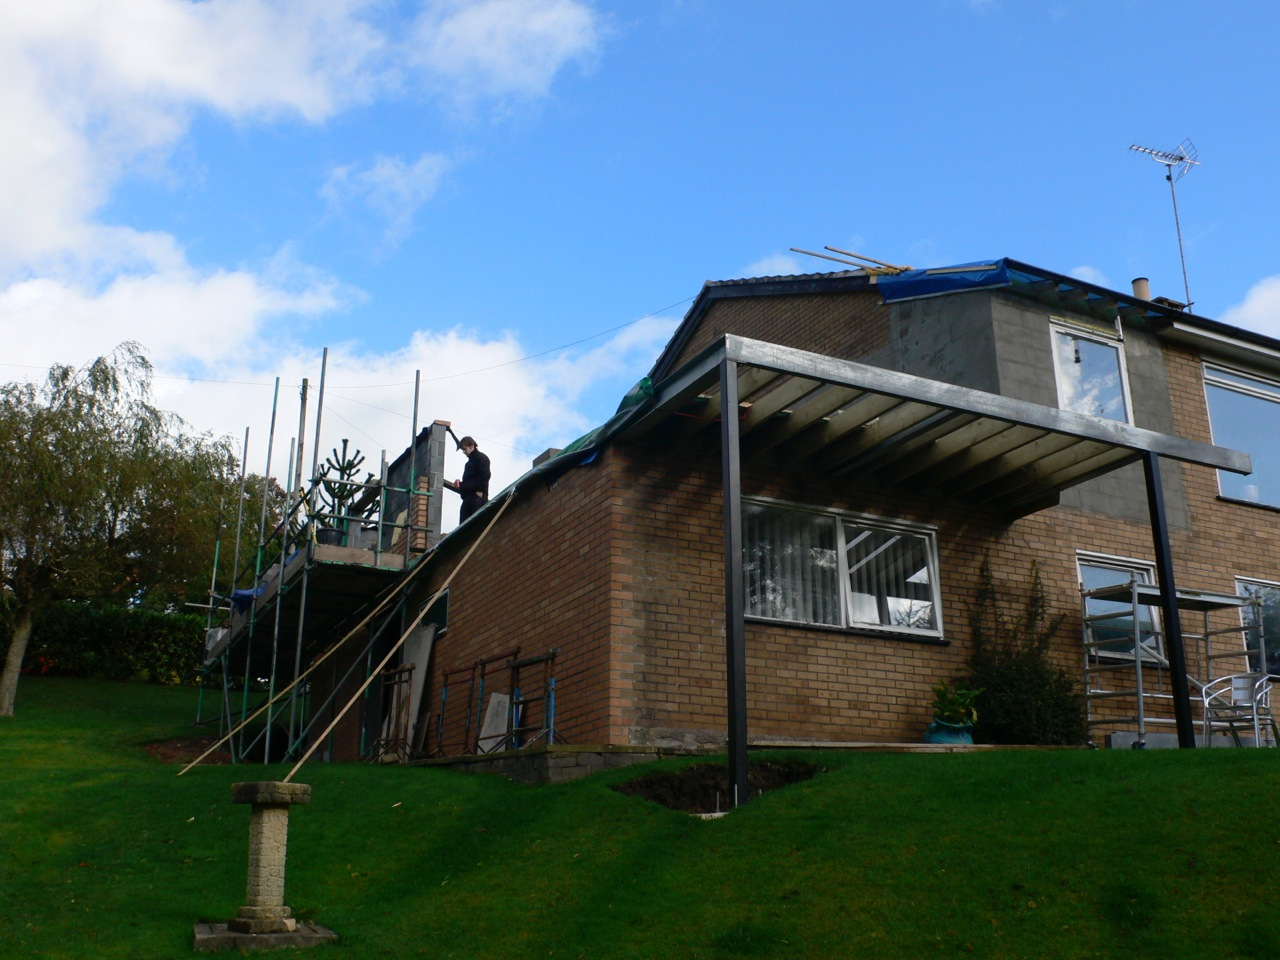 Loft & Extension in stockport